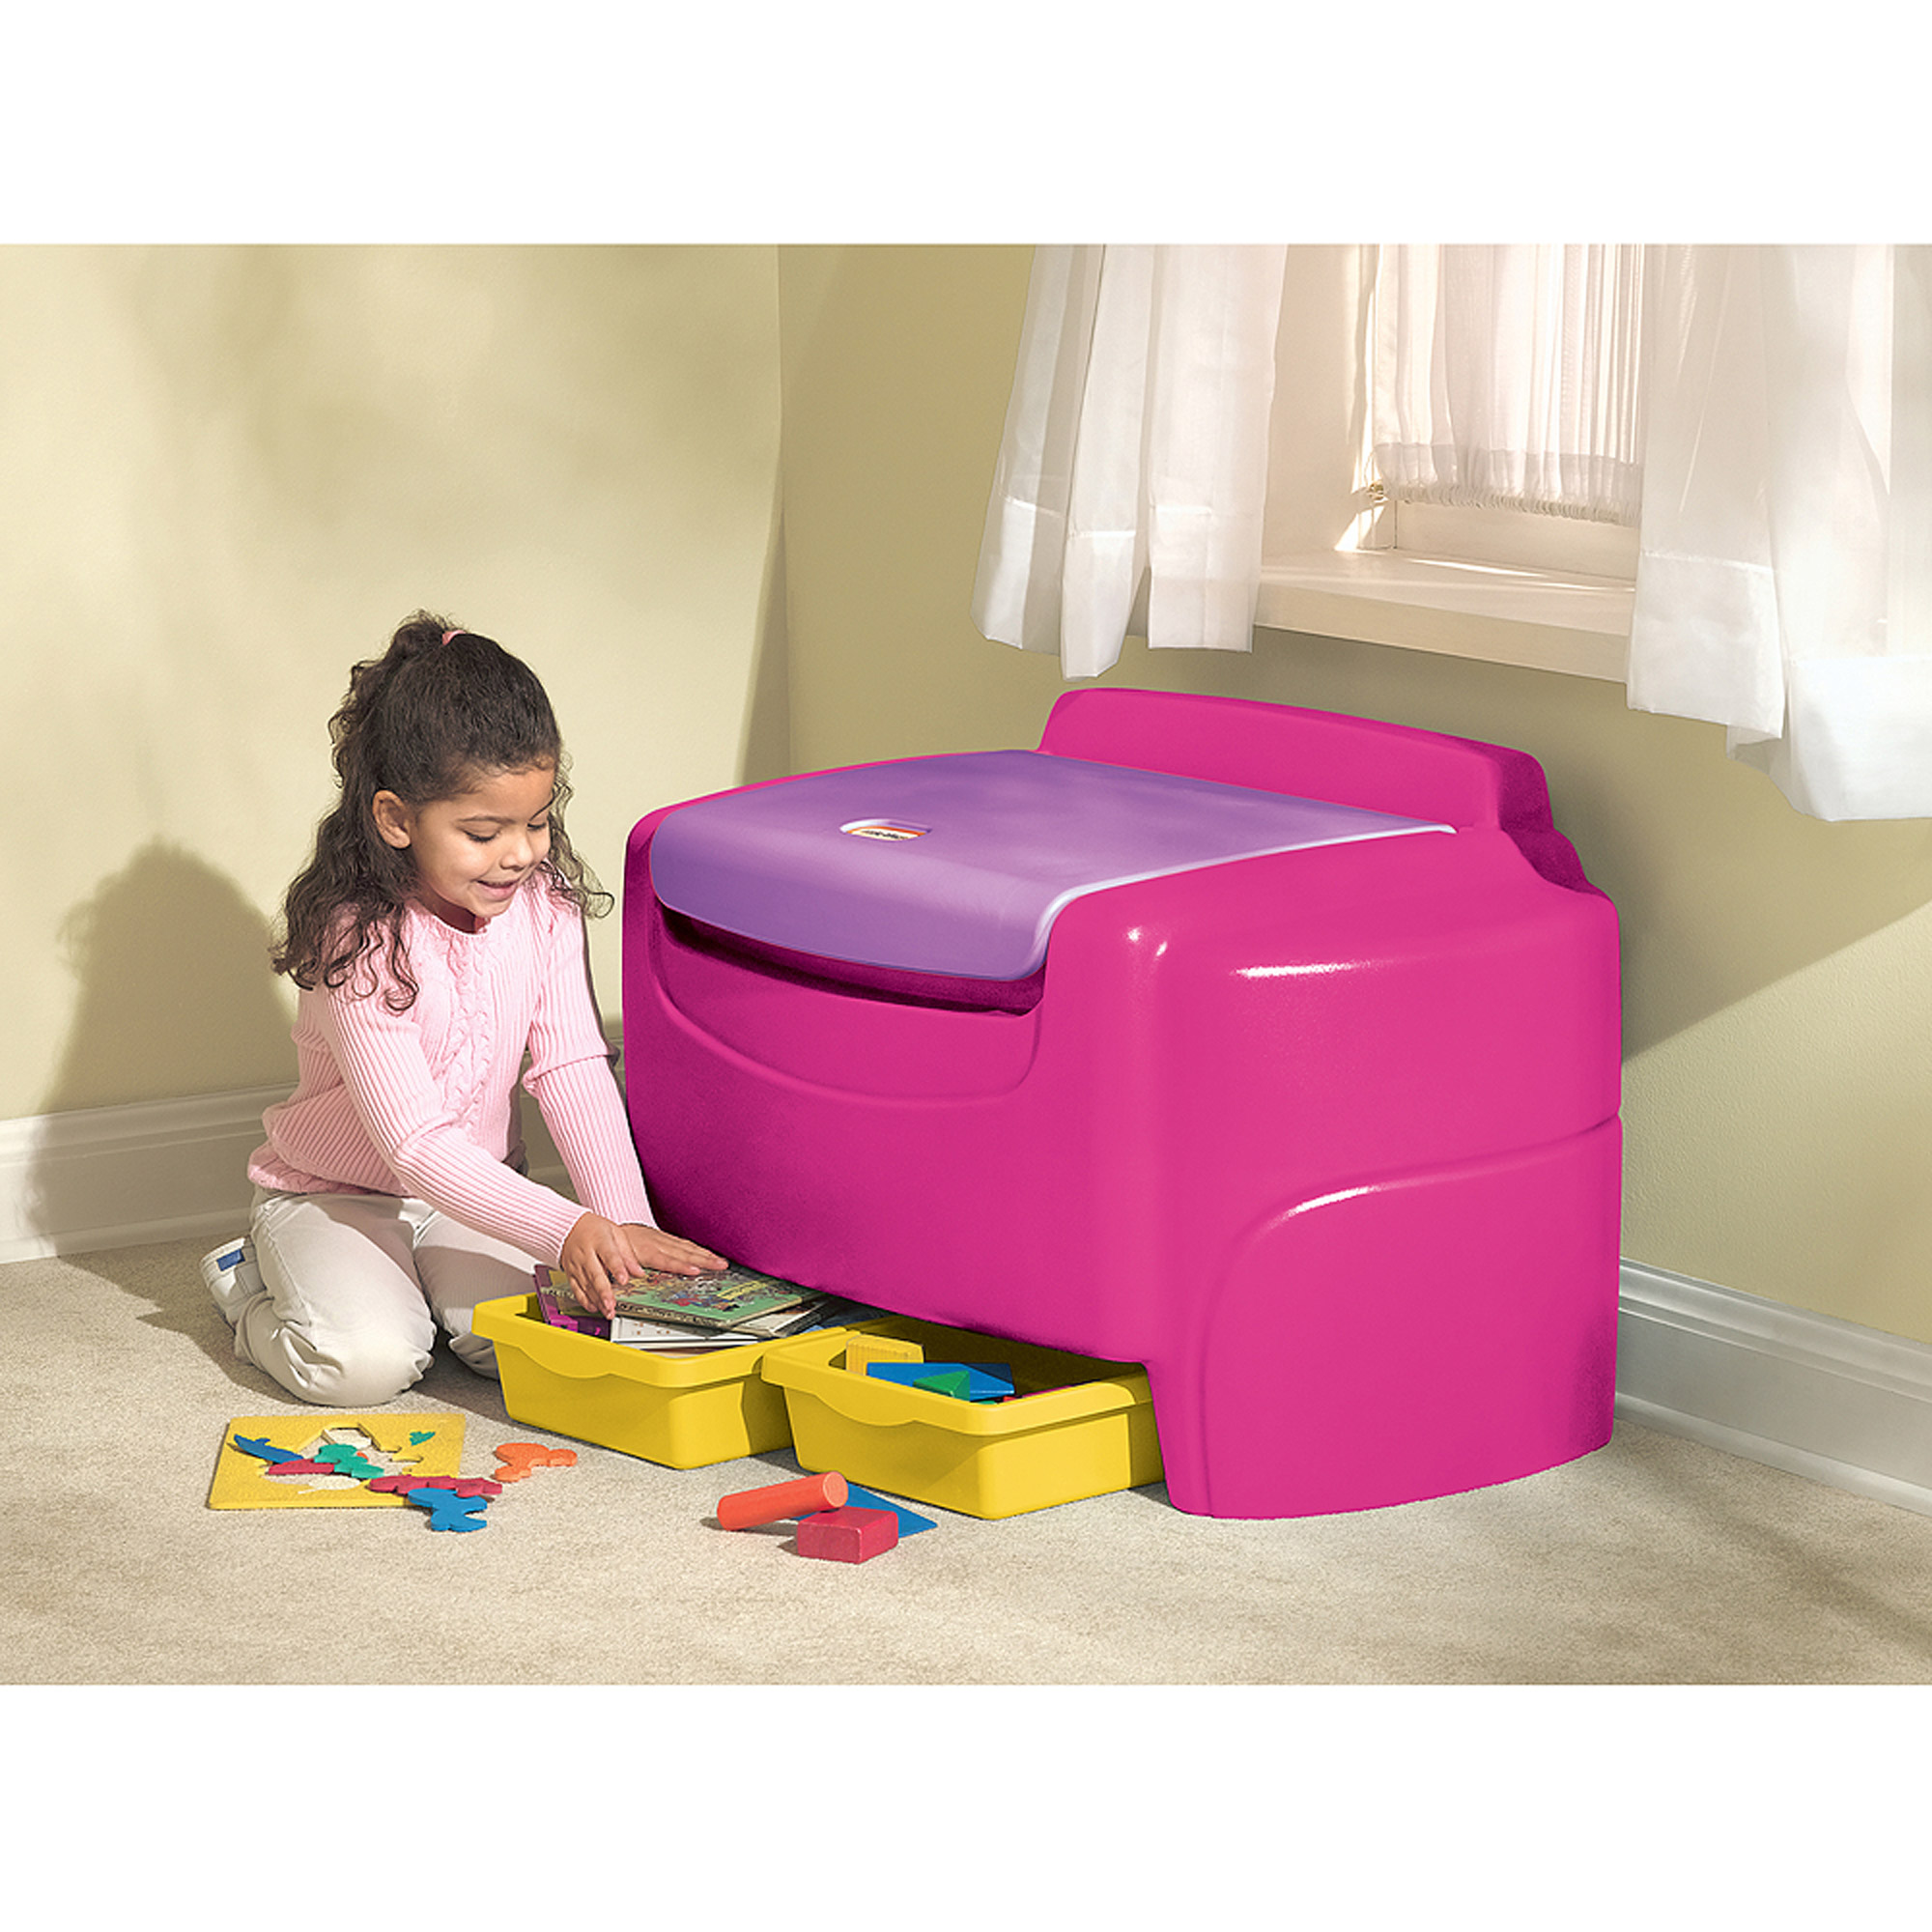 Little Tikes Bright Pink Sort N Store Toy Chest Walmart